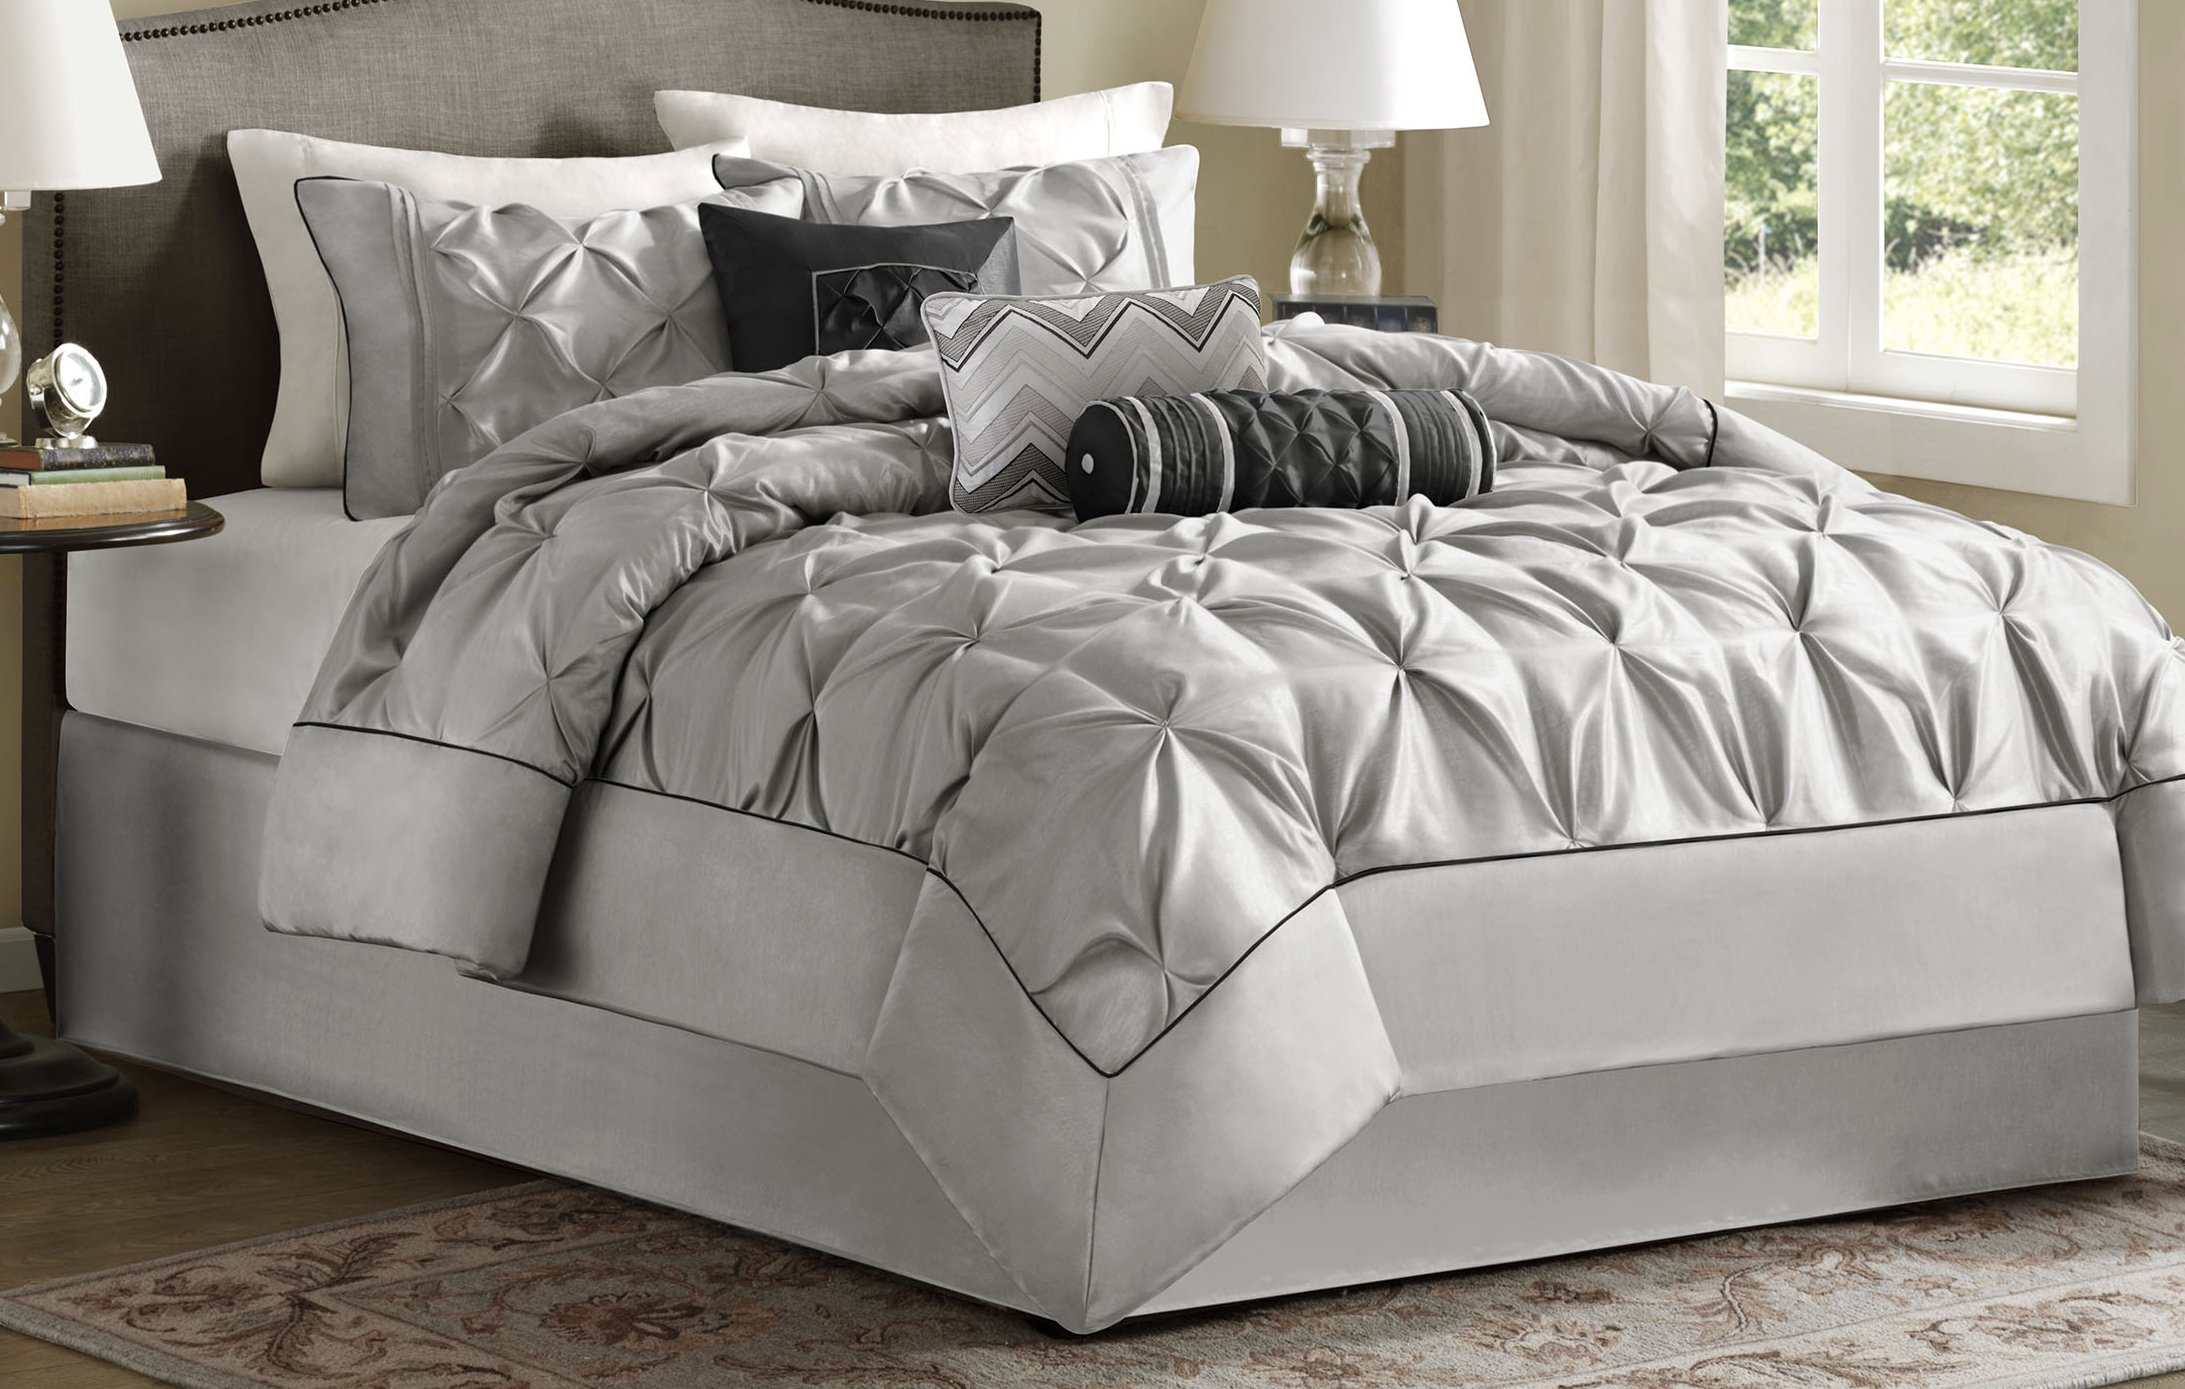 Madison Park Laurel Cal King Size Bed Comforter Set Bed in A Bag - Grey, Wrinkle Tufted Pleated – 7 Pieces Bedding Sets – Faux Silk Bedroom Comforters